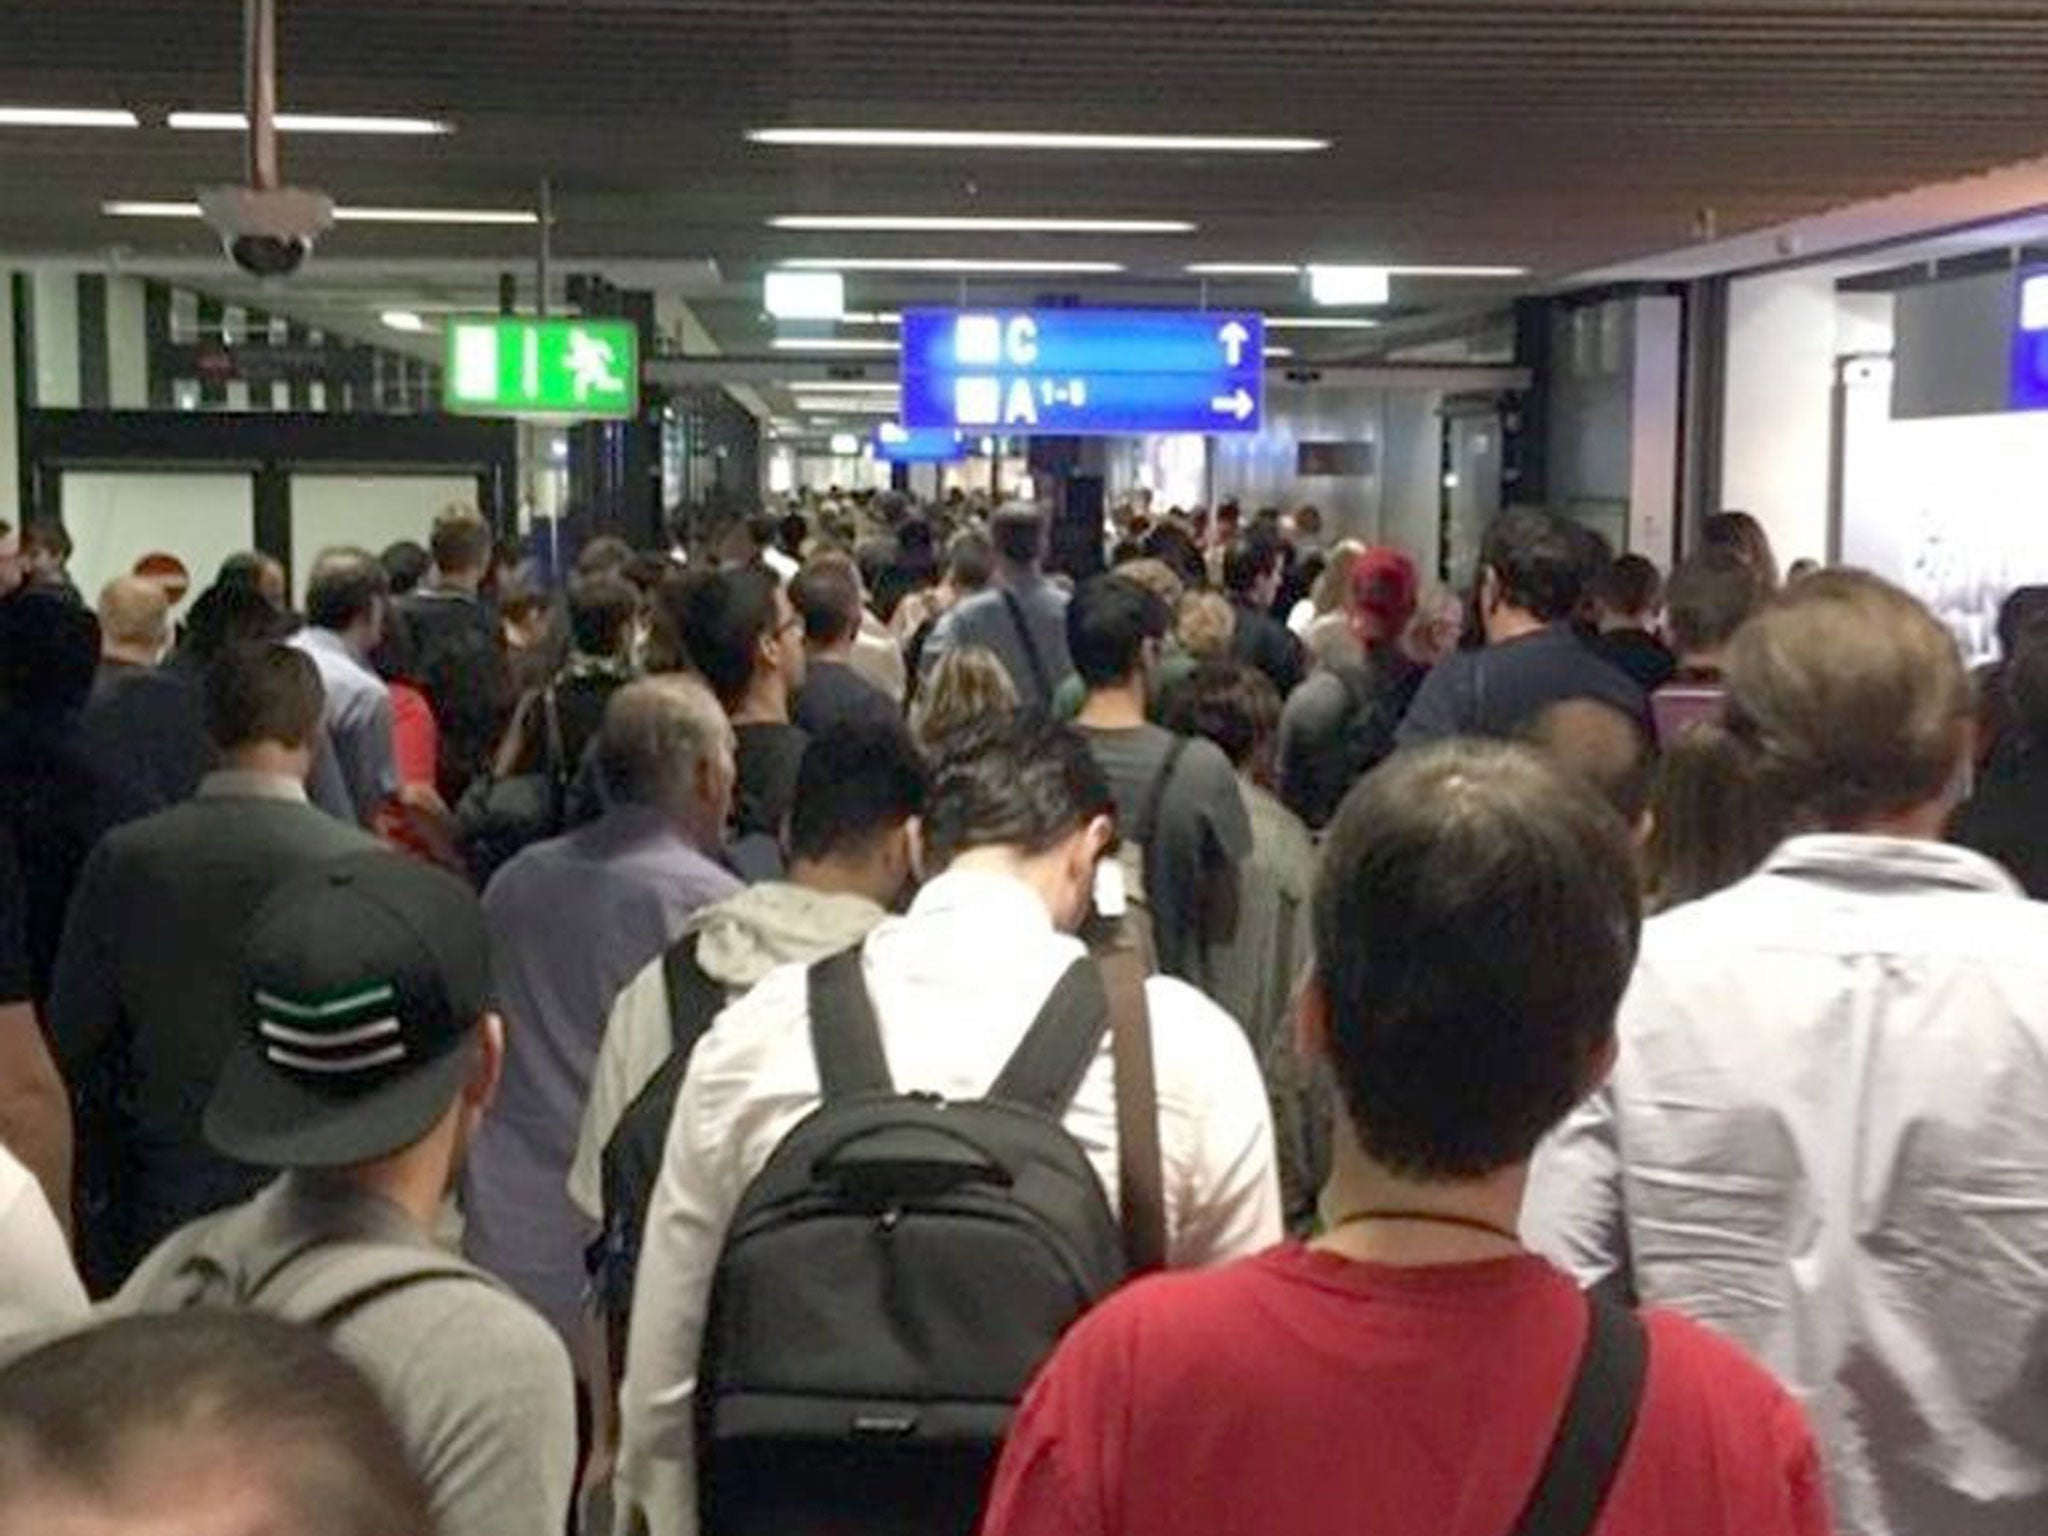 Uk Basketball: Frankfurt Airport Evacuated: Departures Hall Shut After